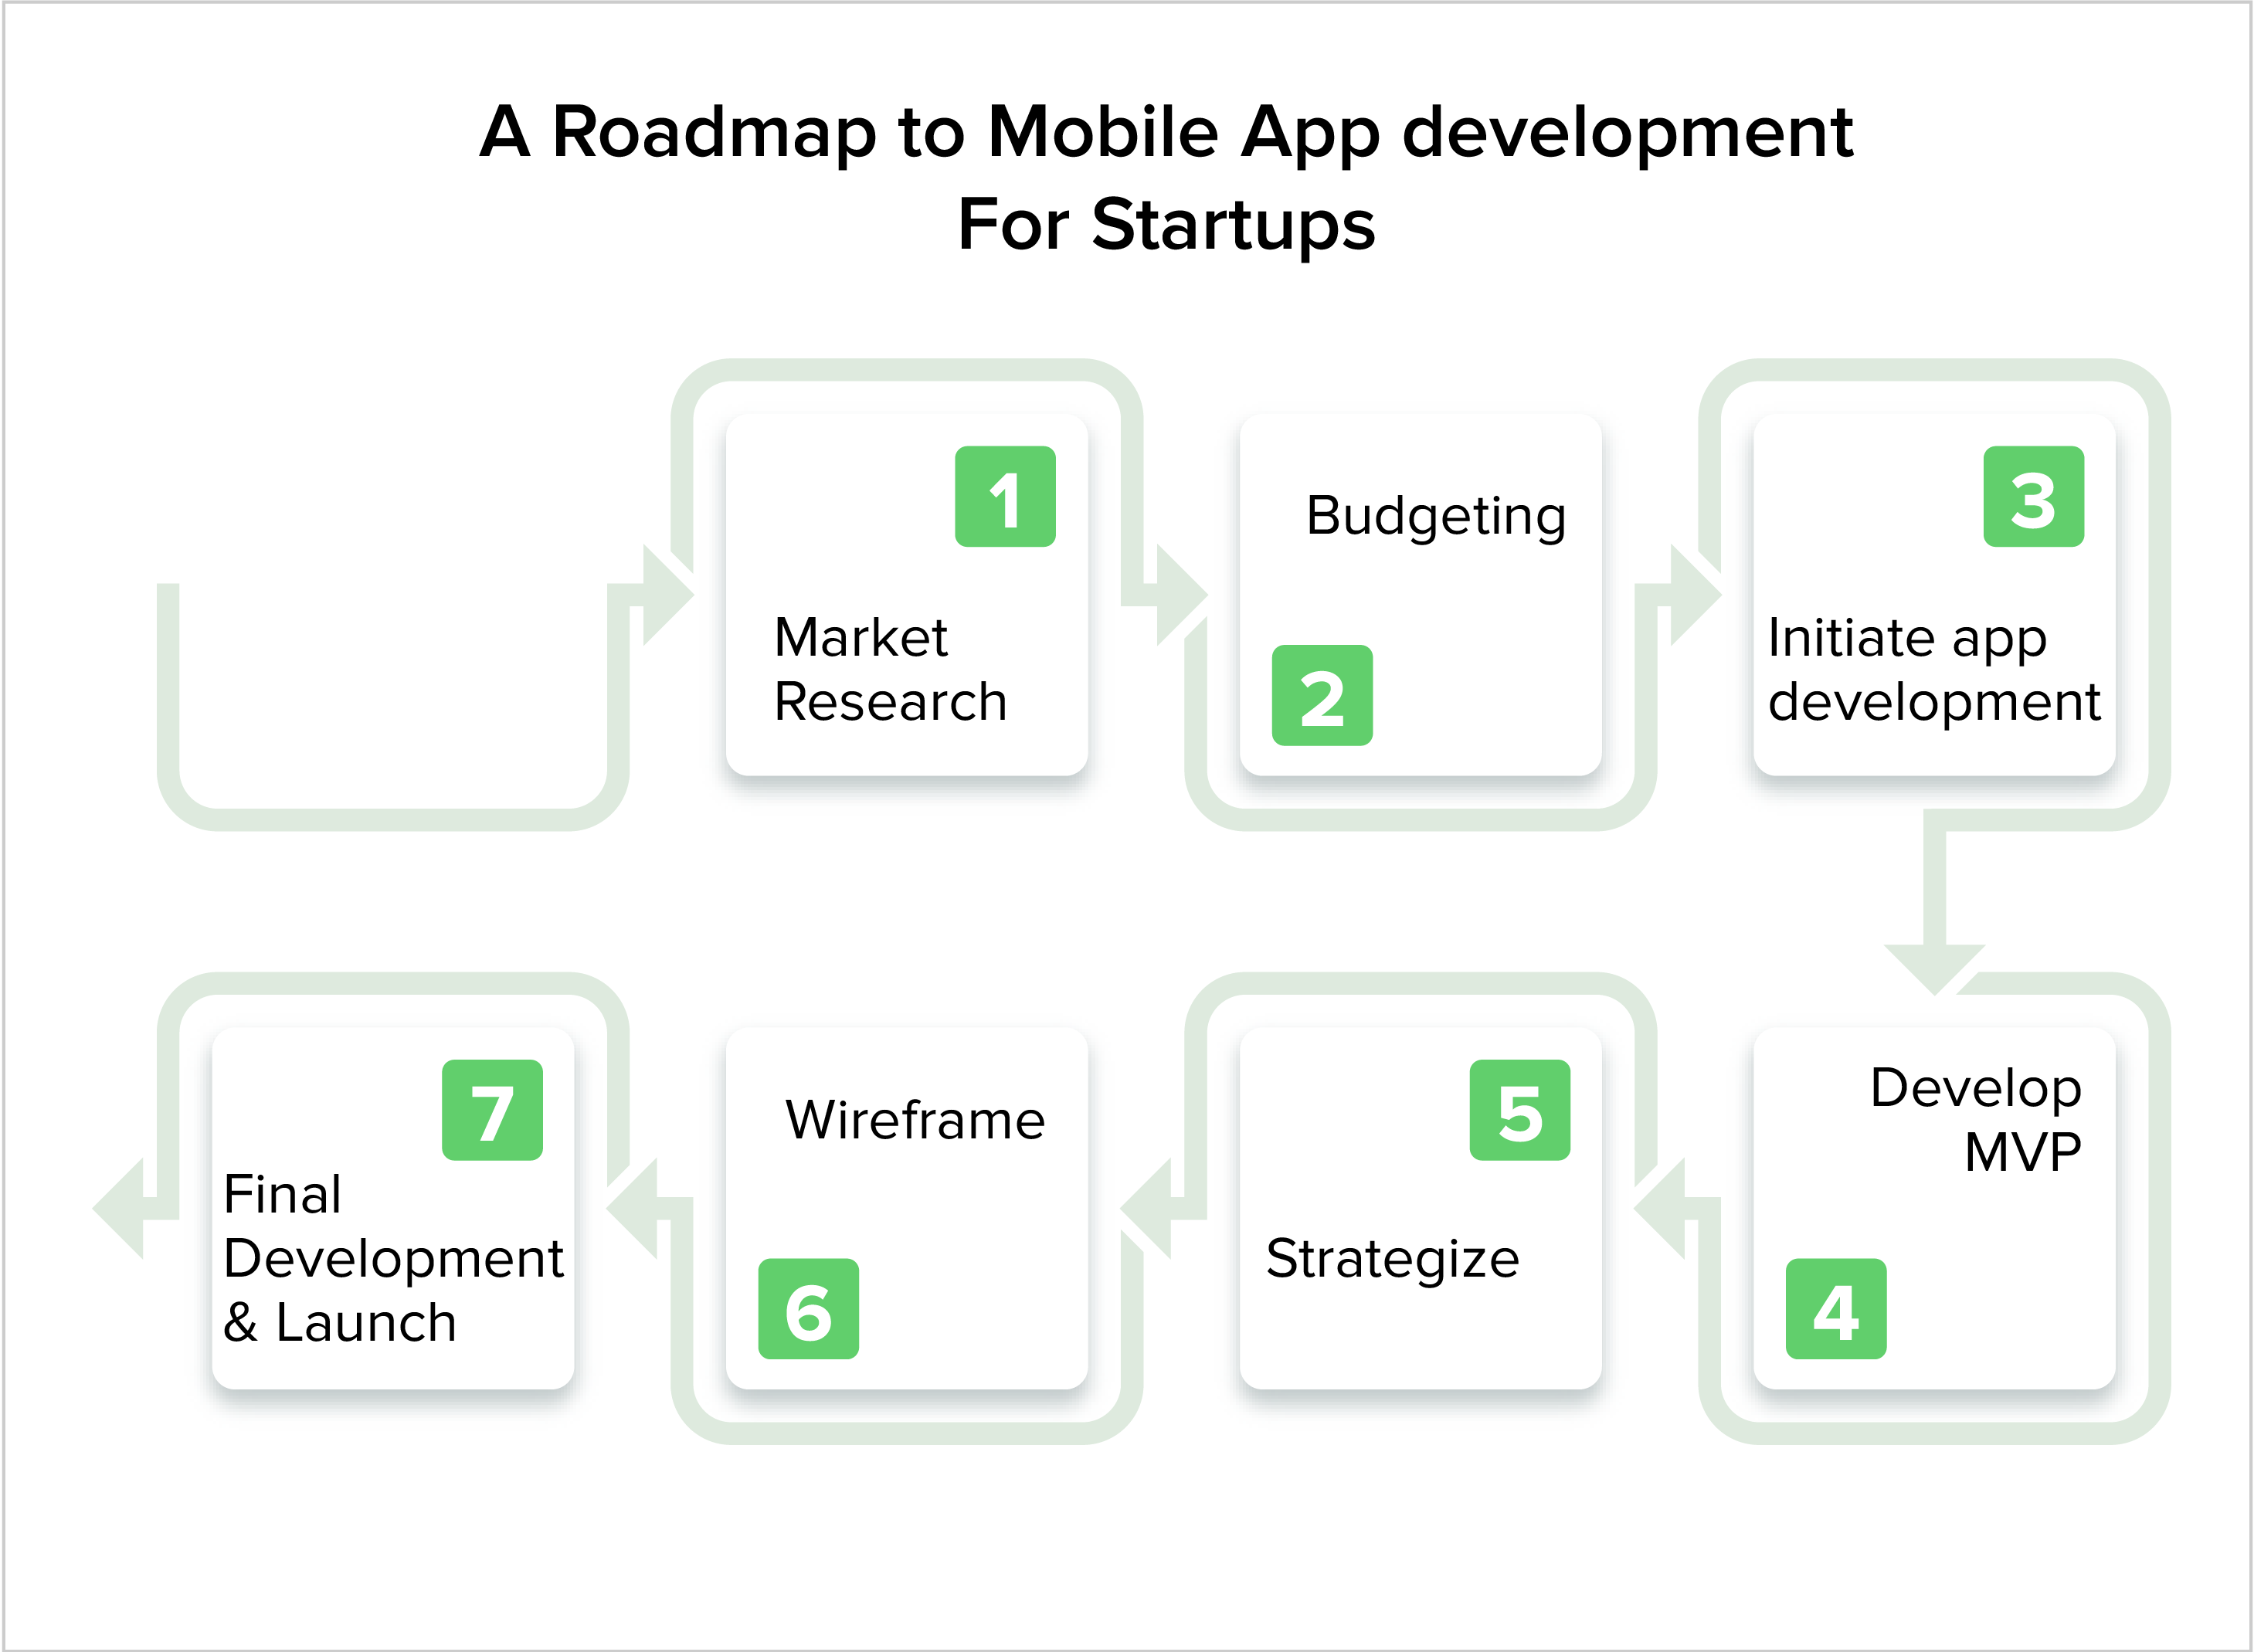 app development for startups